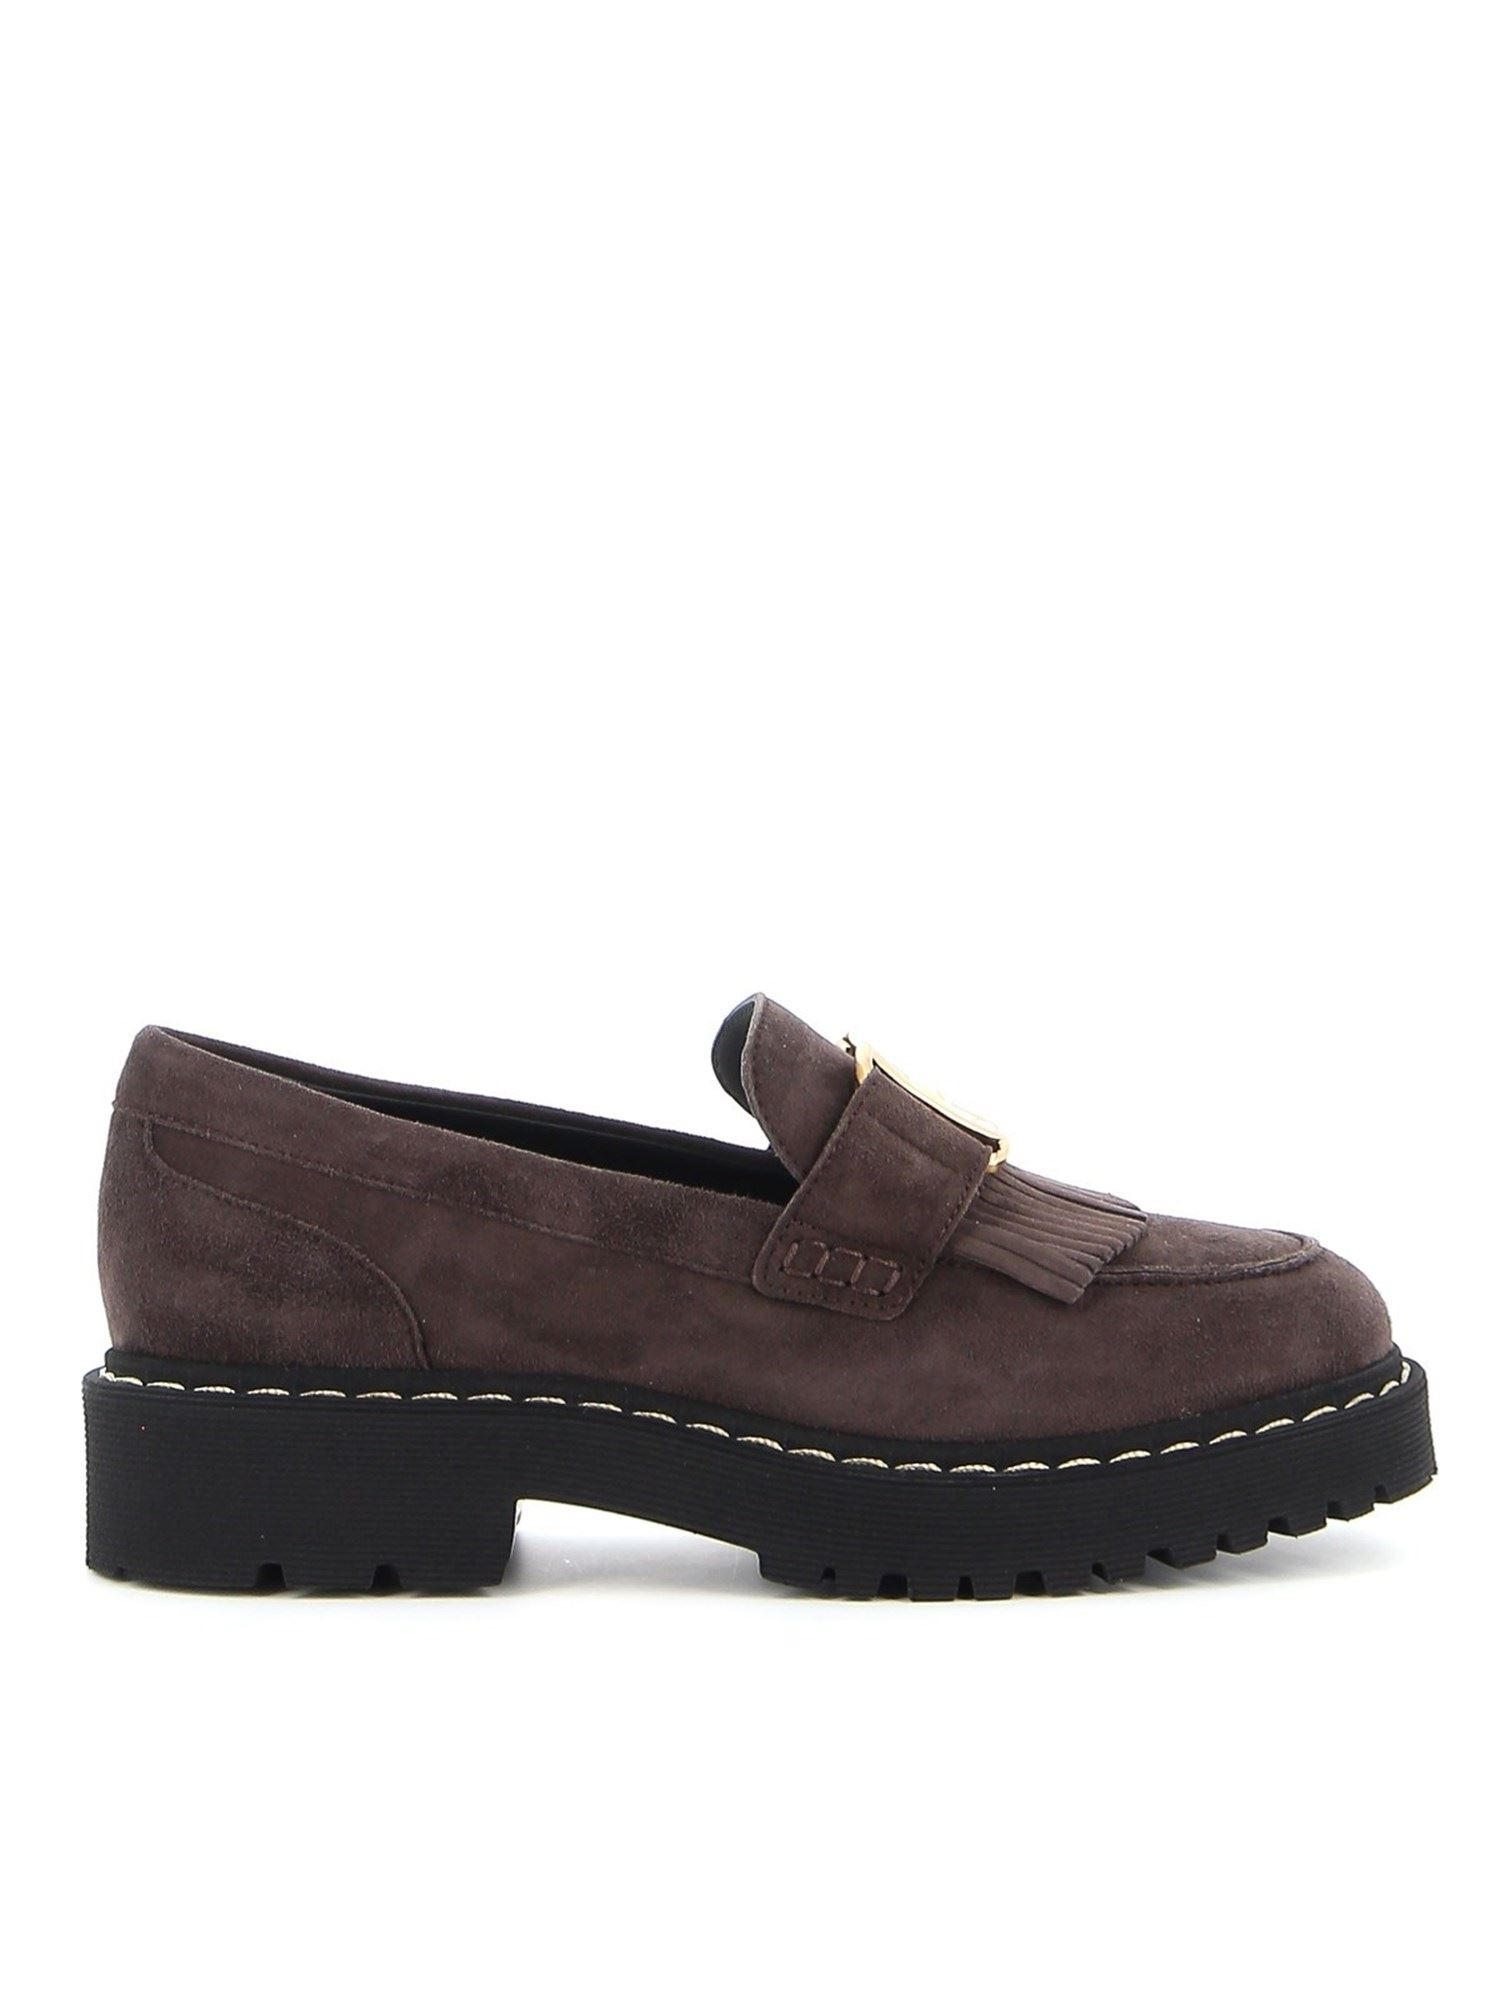 Hogan Suedes H543 LOAFERS IN BROWN